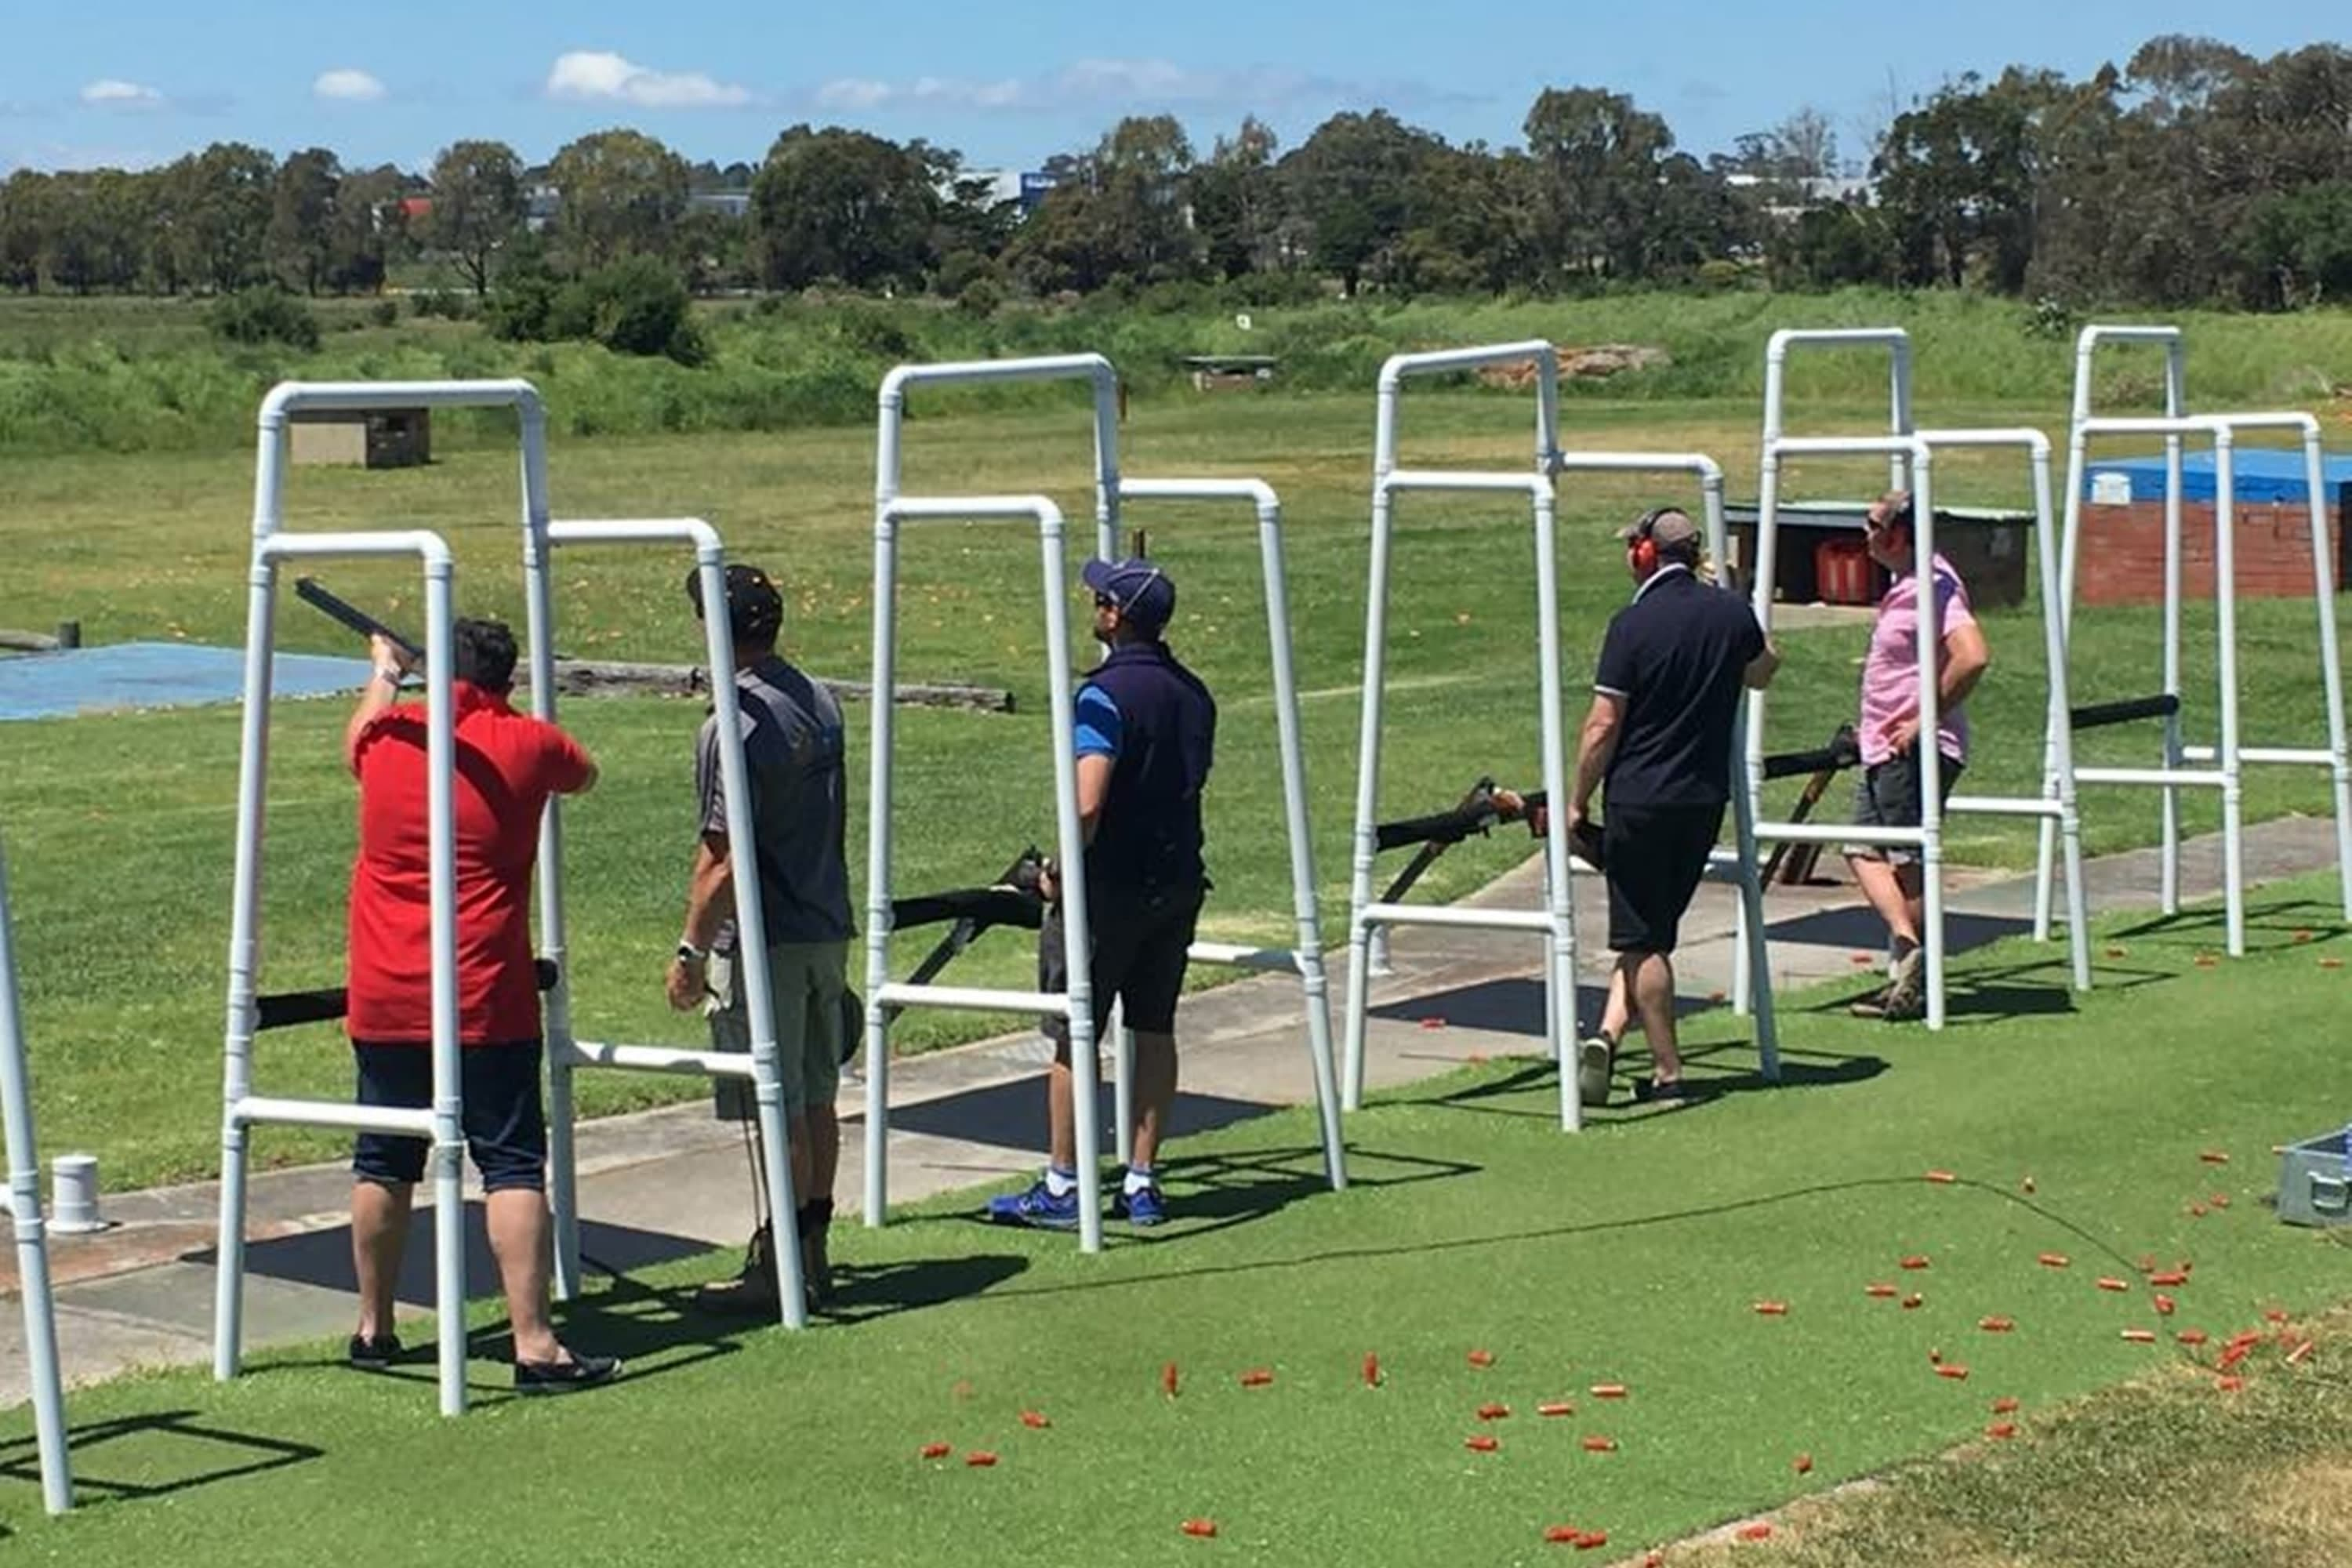 Clay Target Shooting Session, 25 Targets - Epping, Melbourne